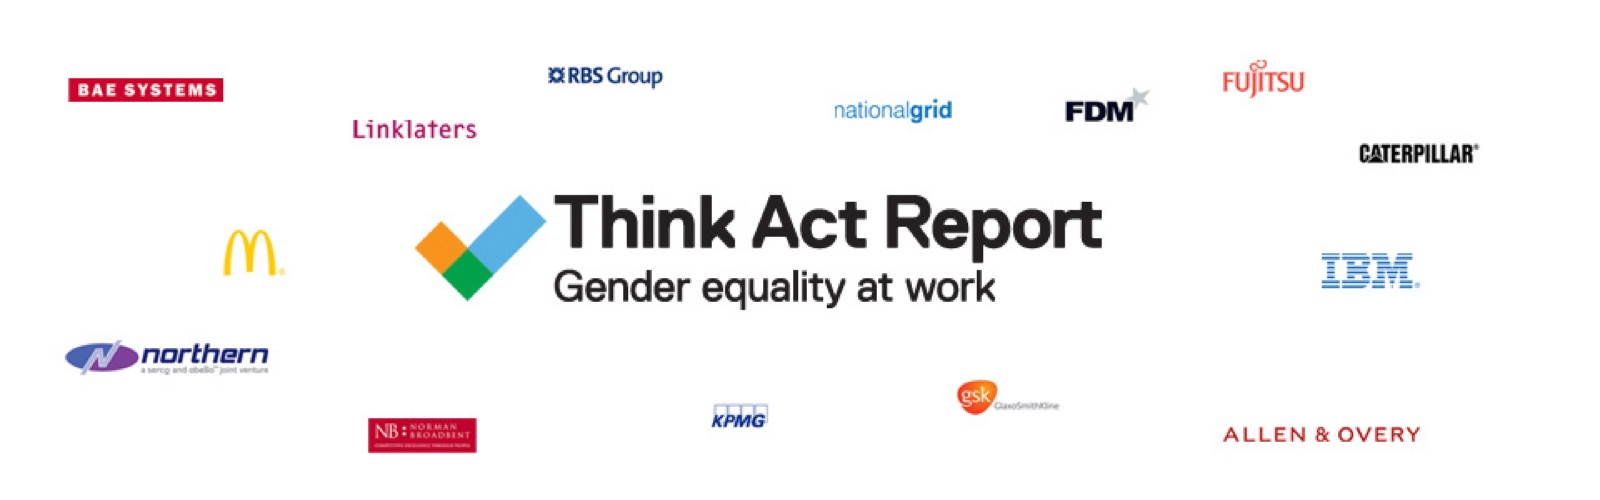 Think act report banner